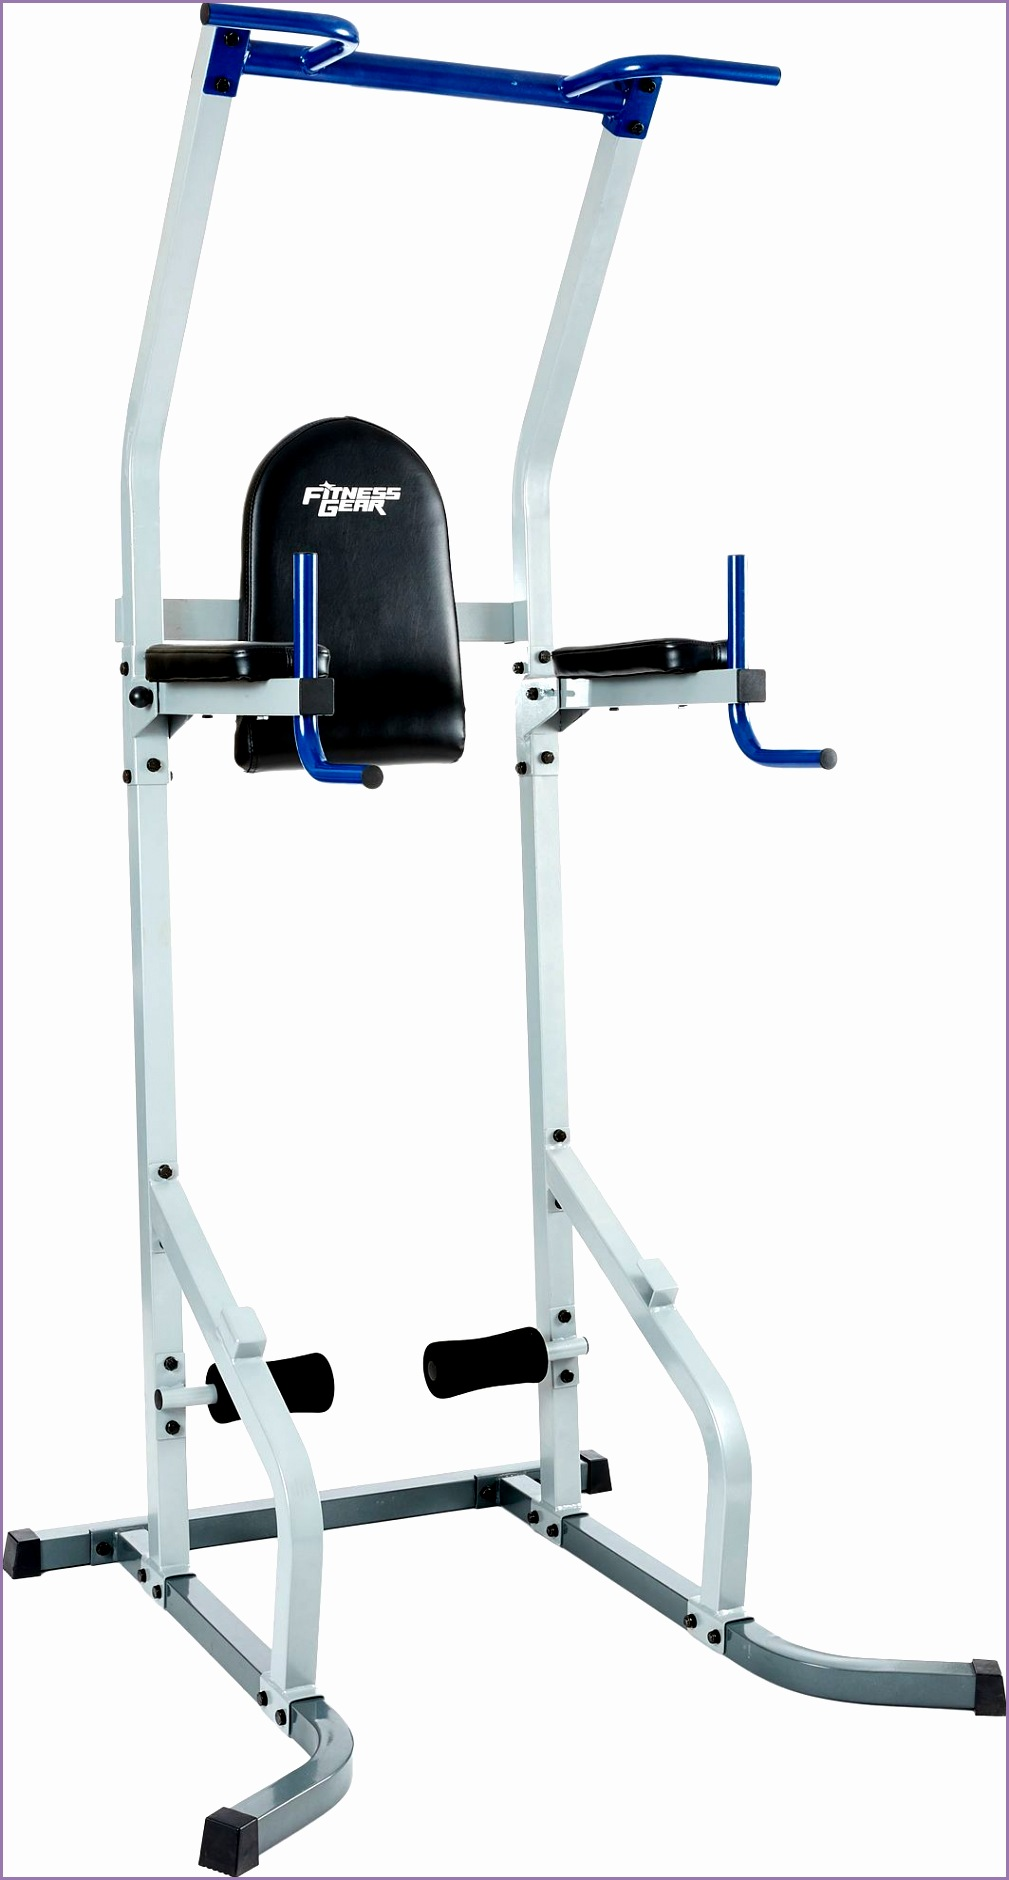 Fitness Gear Power tower 20001063uuaalg Fresh Fitness Gear Pro Power tower 10632000